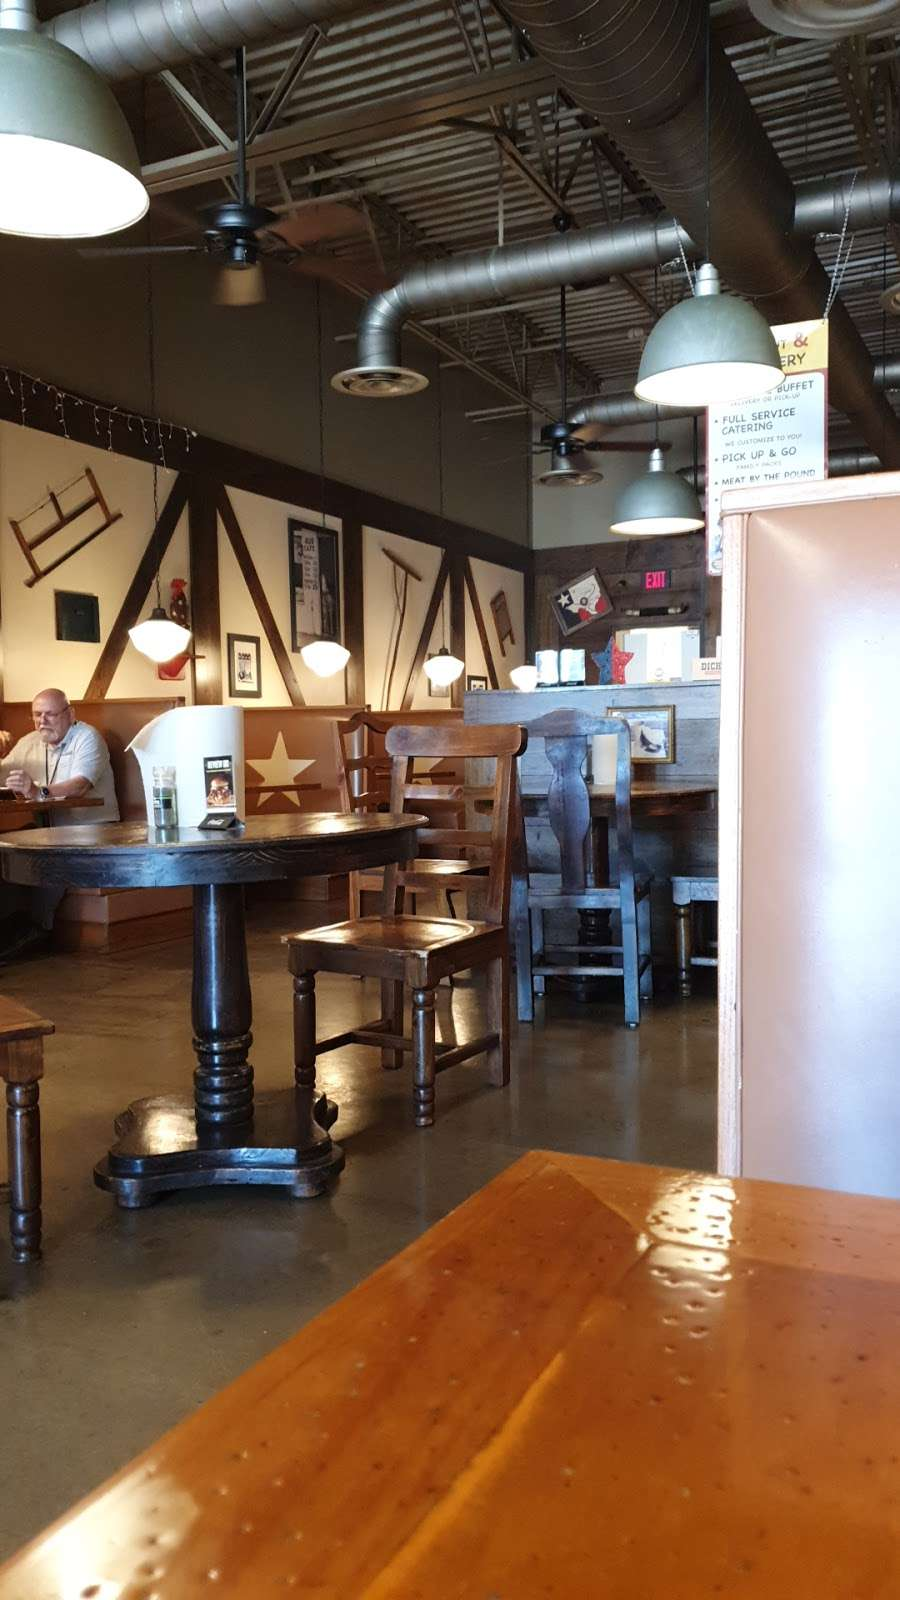 Dickeys Barbecue Pit - meal delivery    Photo 9 of 9   Address: 3220 E Hebron Pkwy, Carrollton, TX 75010, USA   Phone: (972) 307-1100